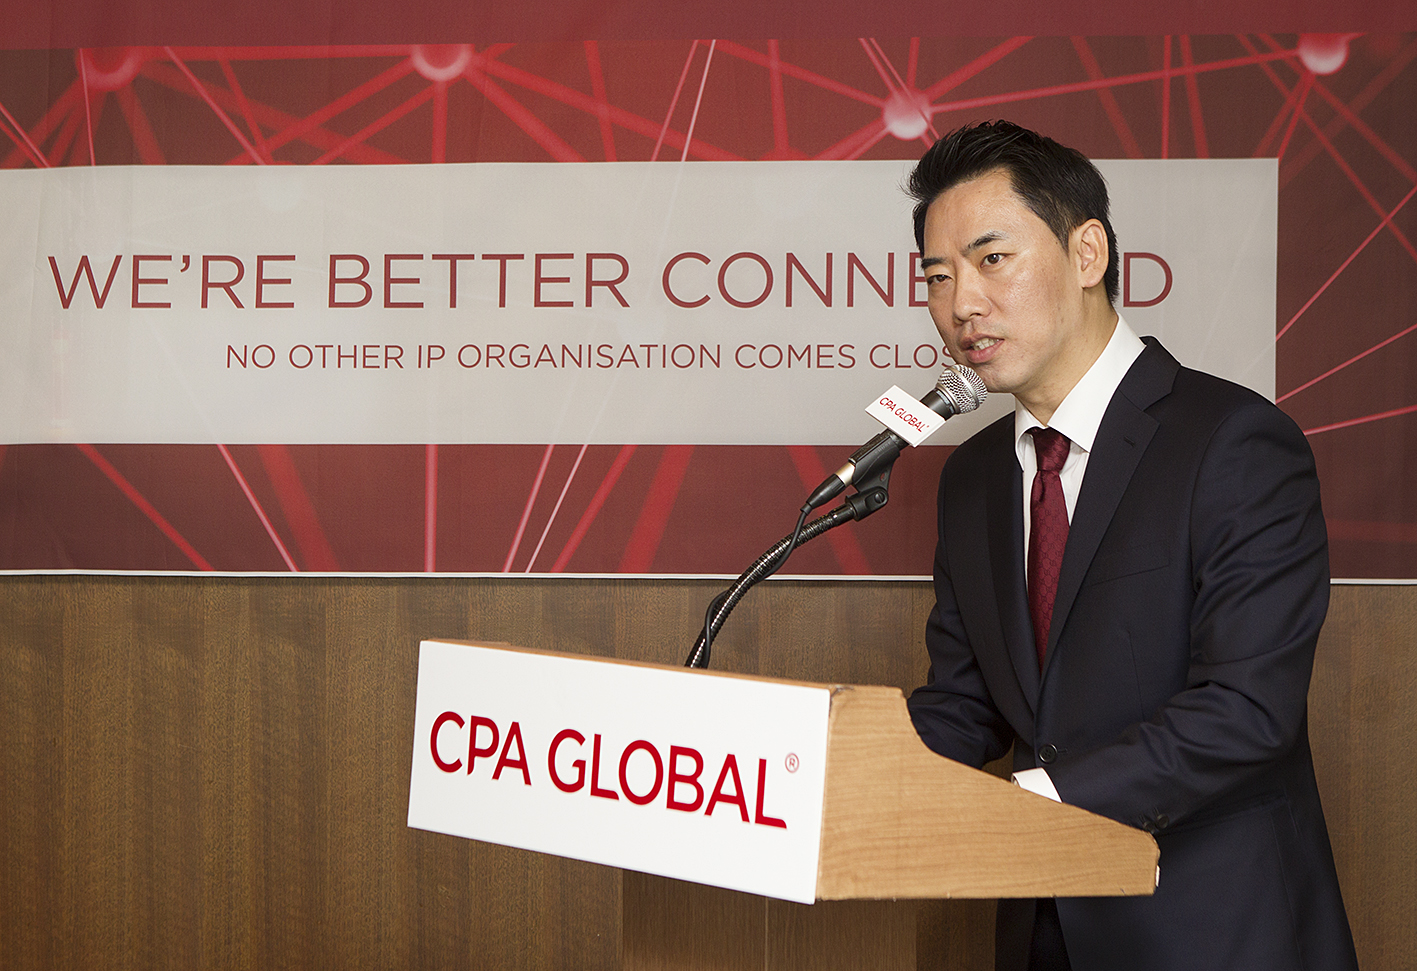 Ahn Sung-sik (Andrew), General Manger of CPA GLOBAL Korea, said that CPA Global Korea will continue to provide top-class IP management services to its customers to help them drive the value from IP.